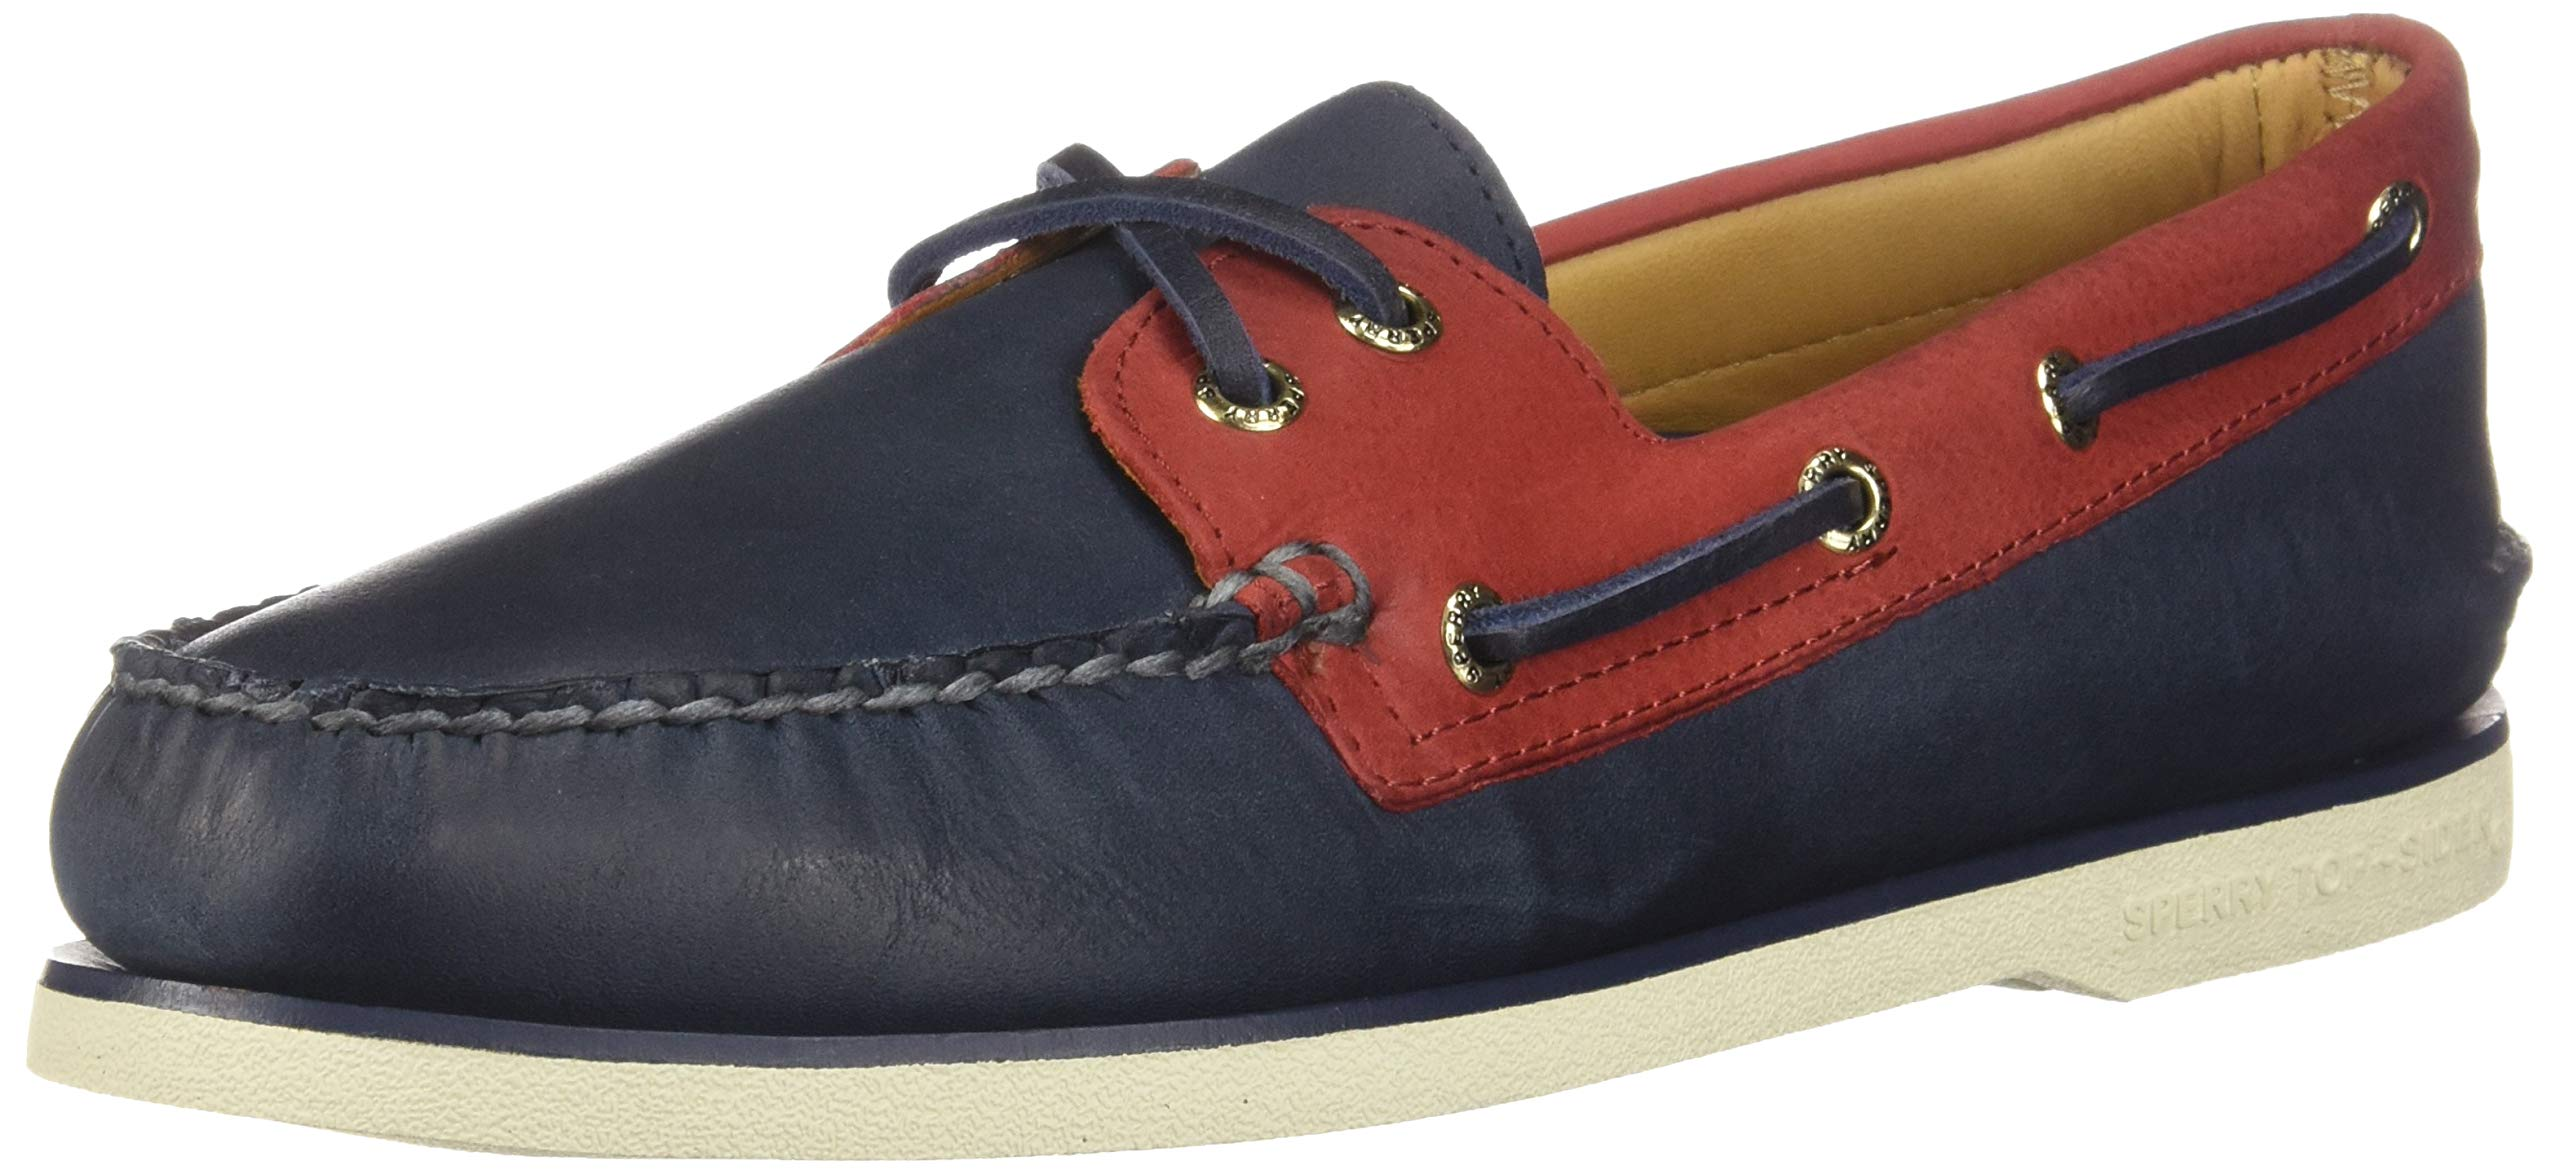 Sperry Mens Gold Cup Authentic Original Chevre Boat Shoe 9.5 Navy/Red